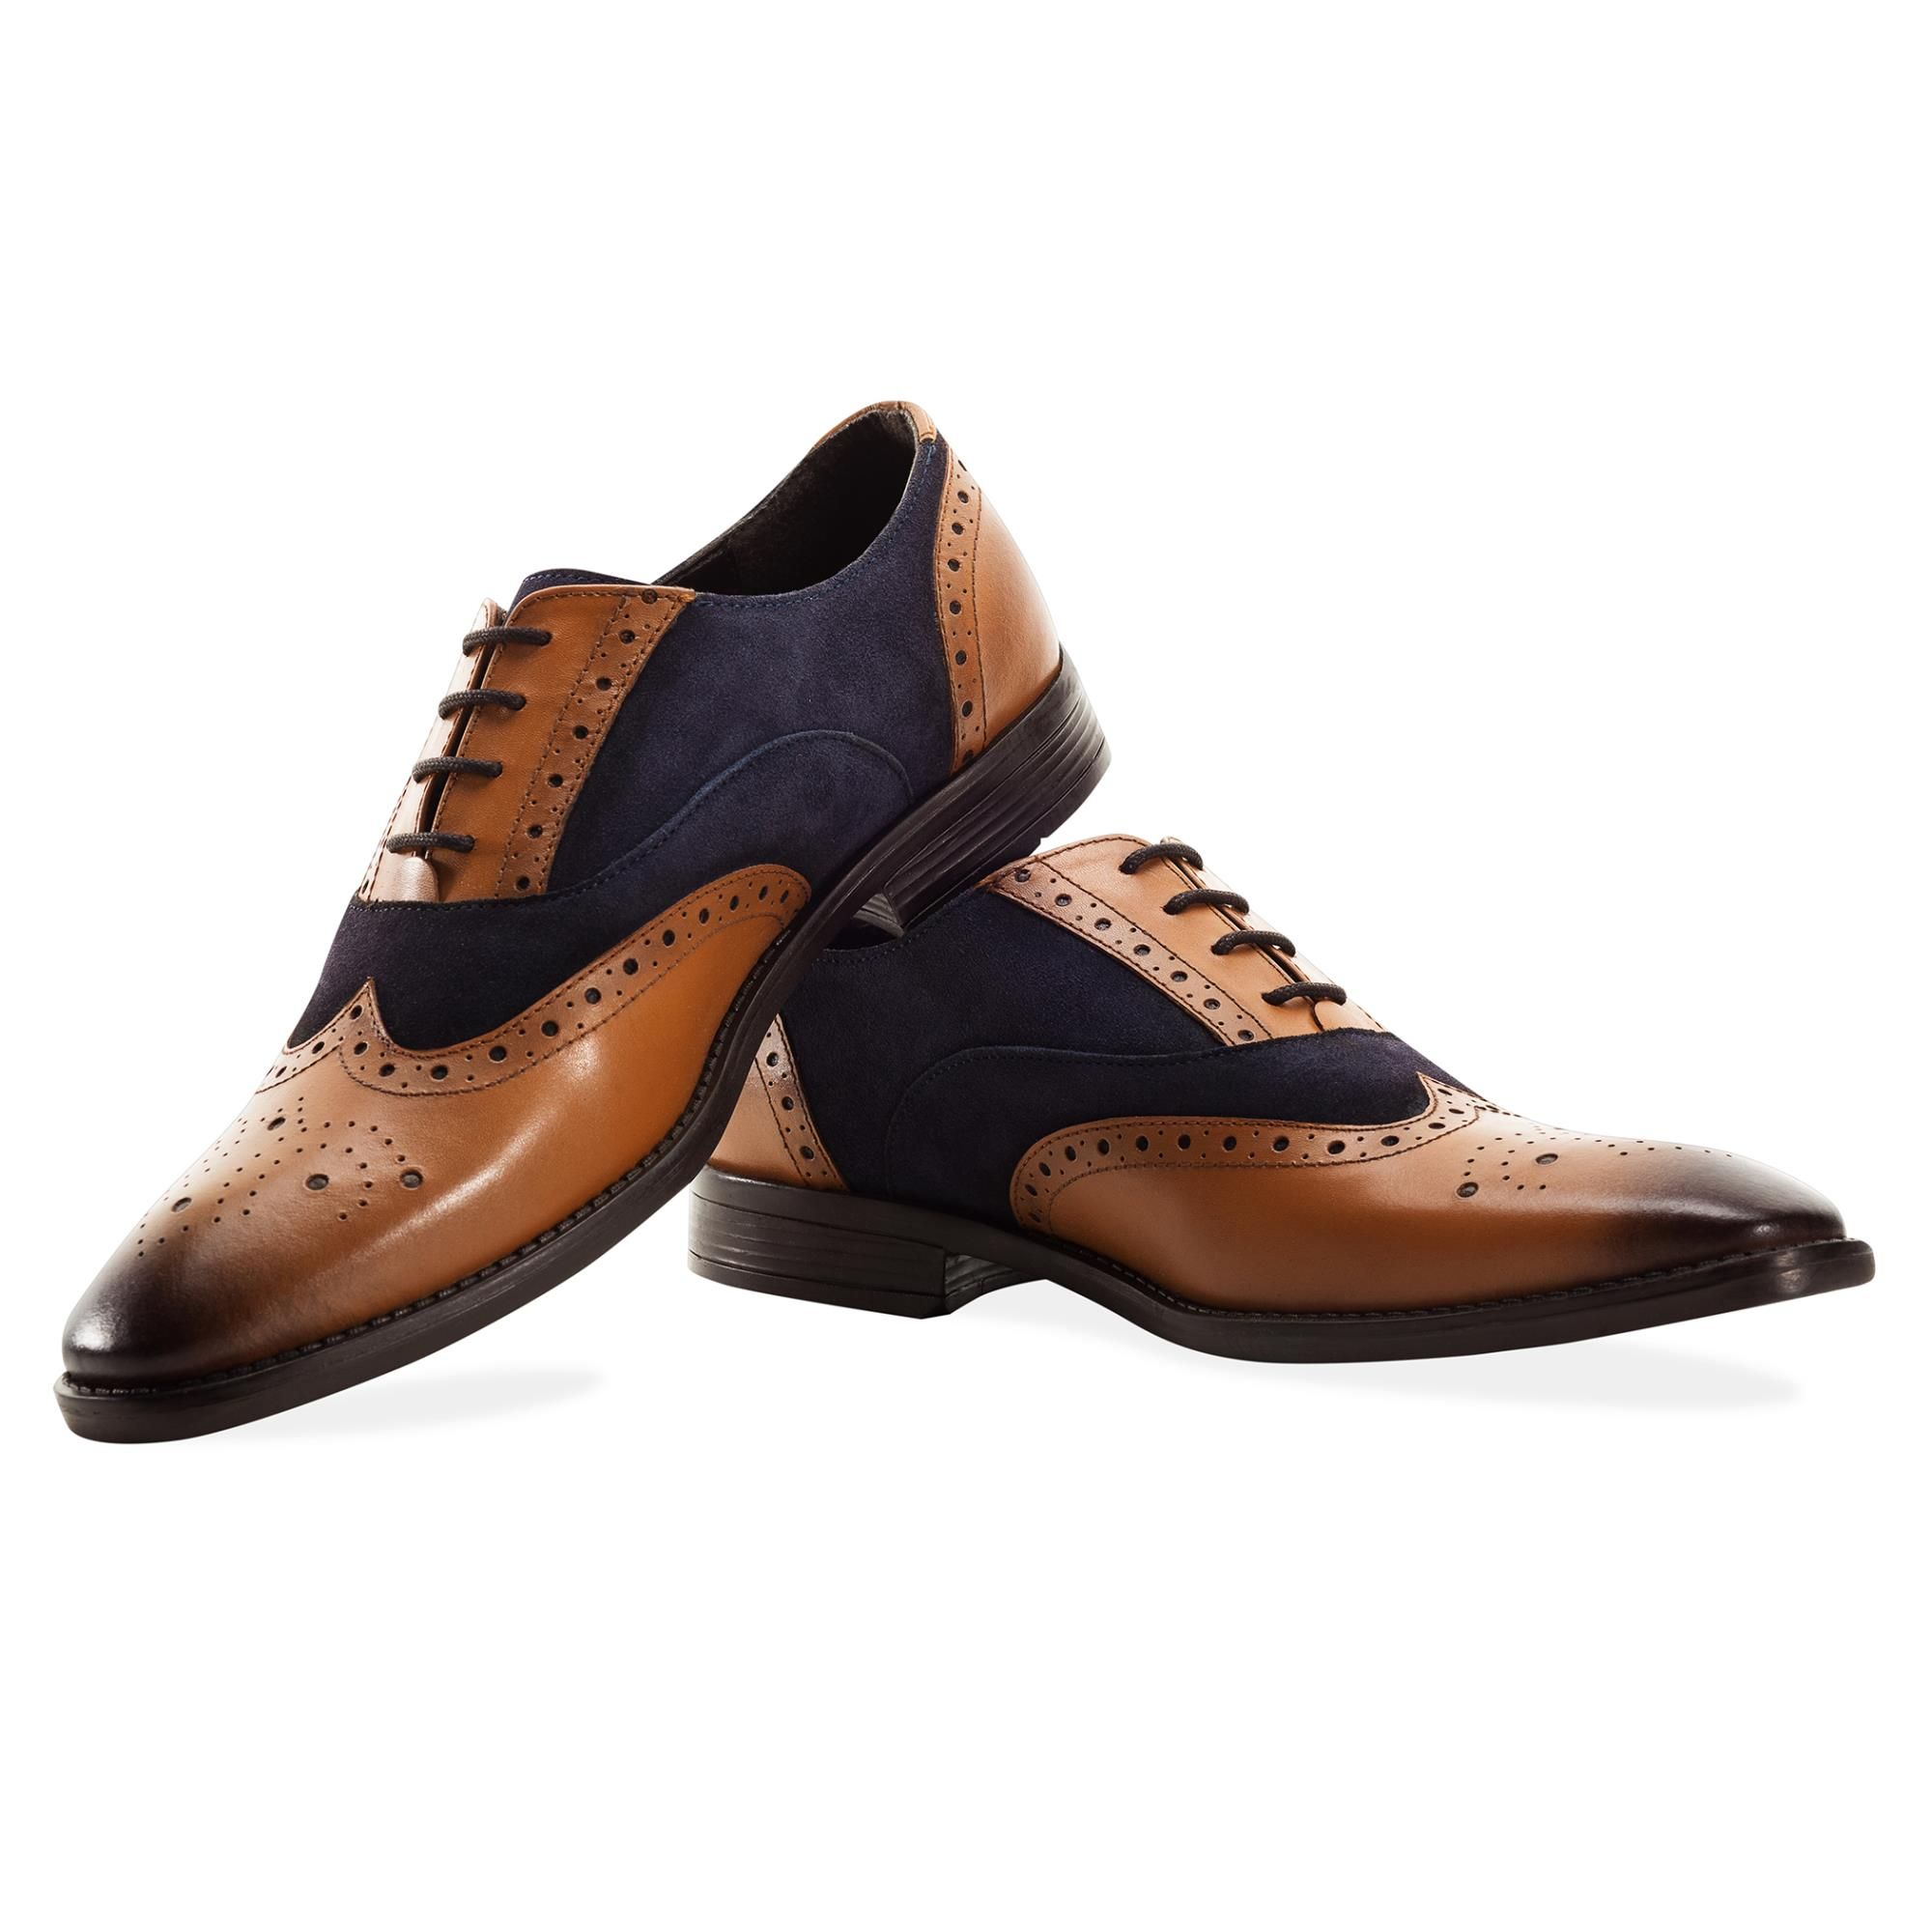 Redfoot Issac Navy & Tan